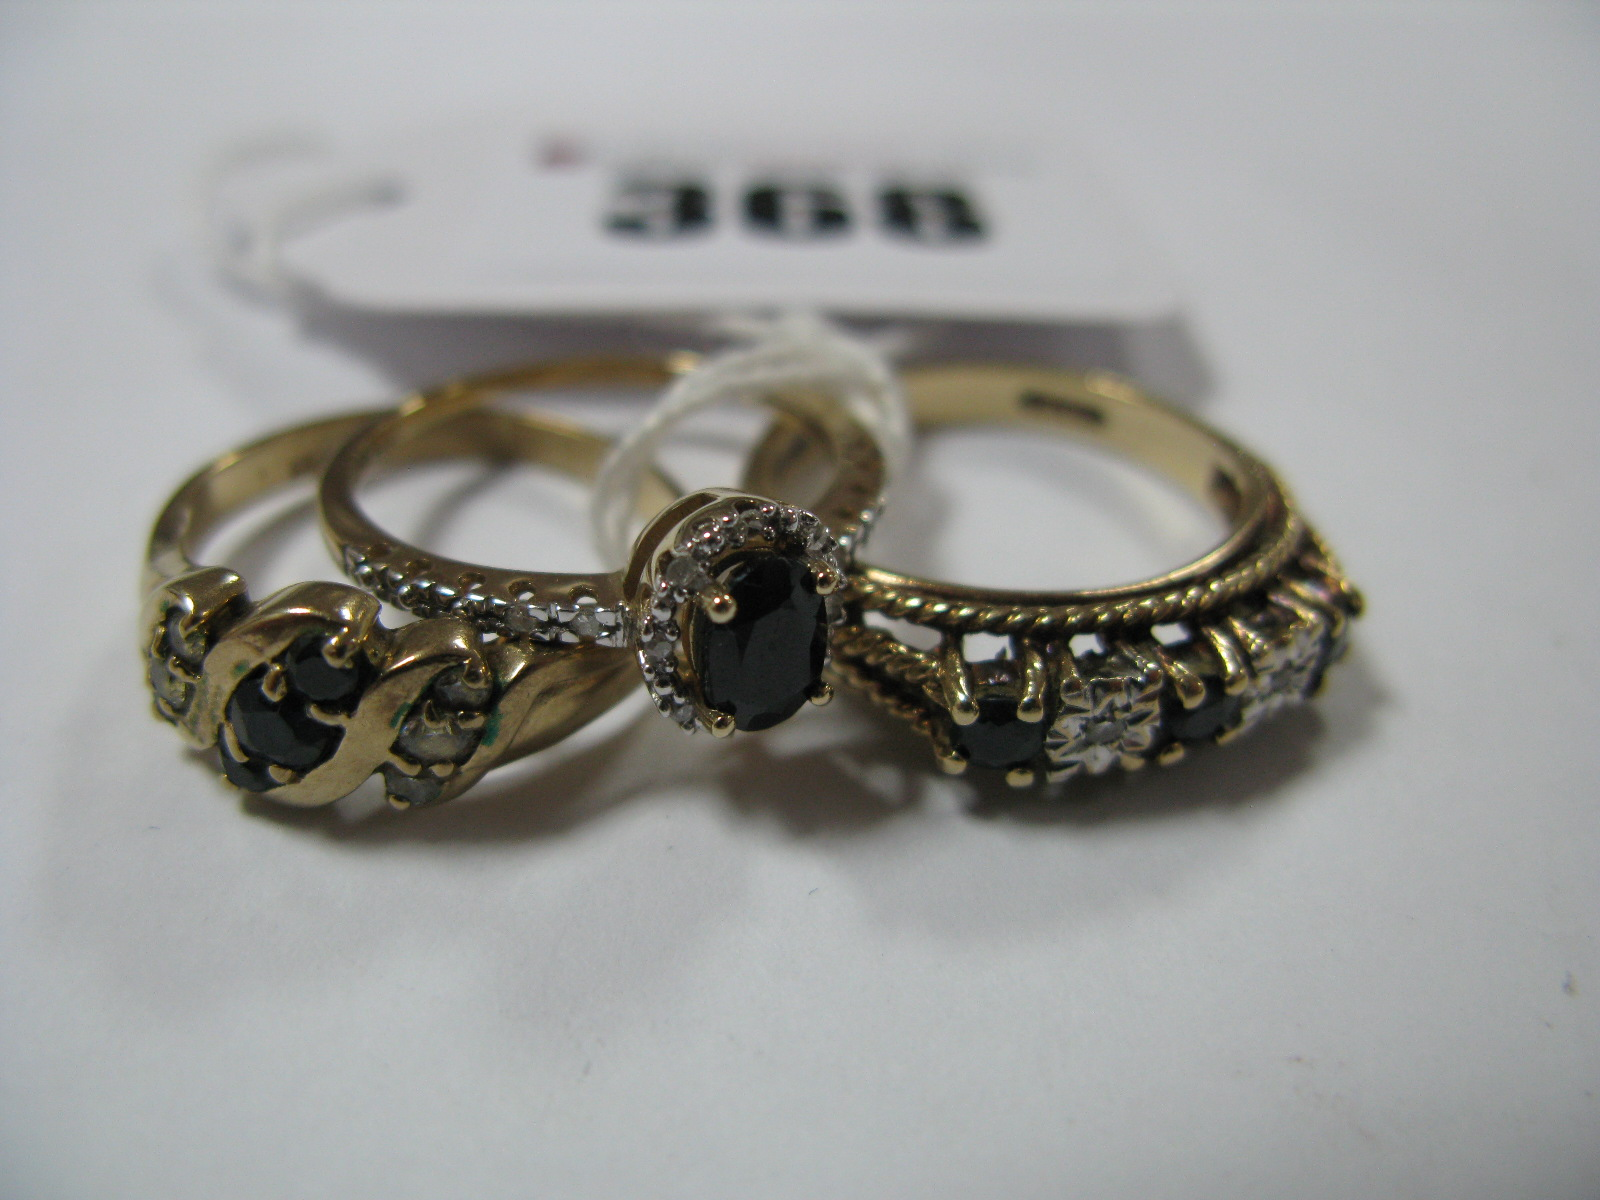 Lot 368 - A Modern 9ct Gold Cluster Ring, oval four claw set, within openwork inset border and shoulders,